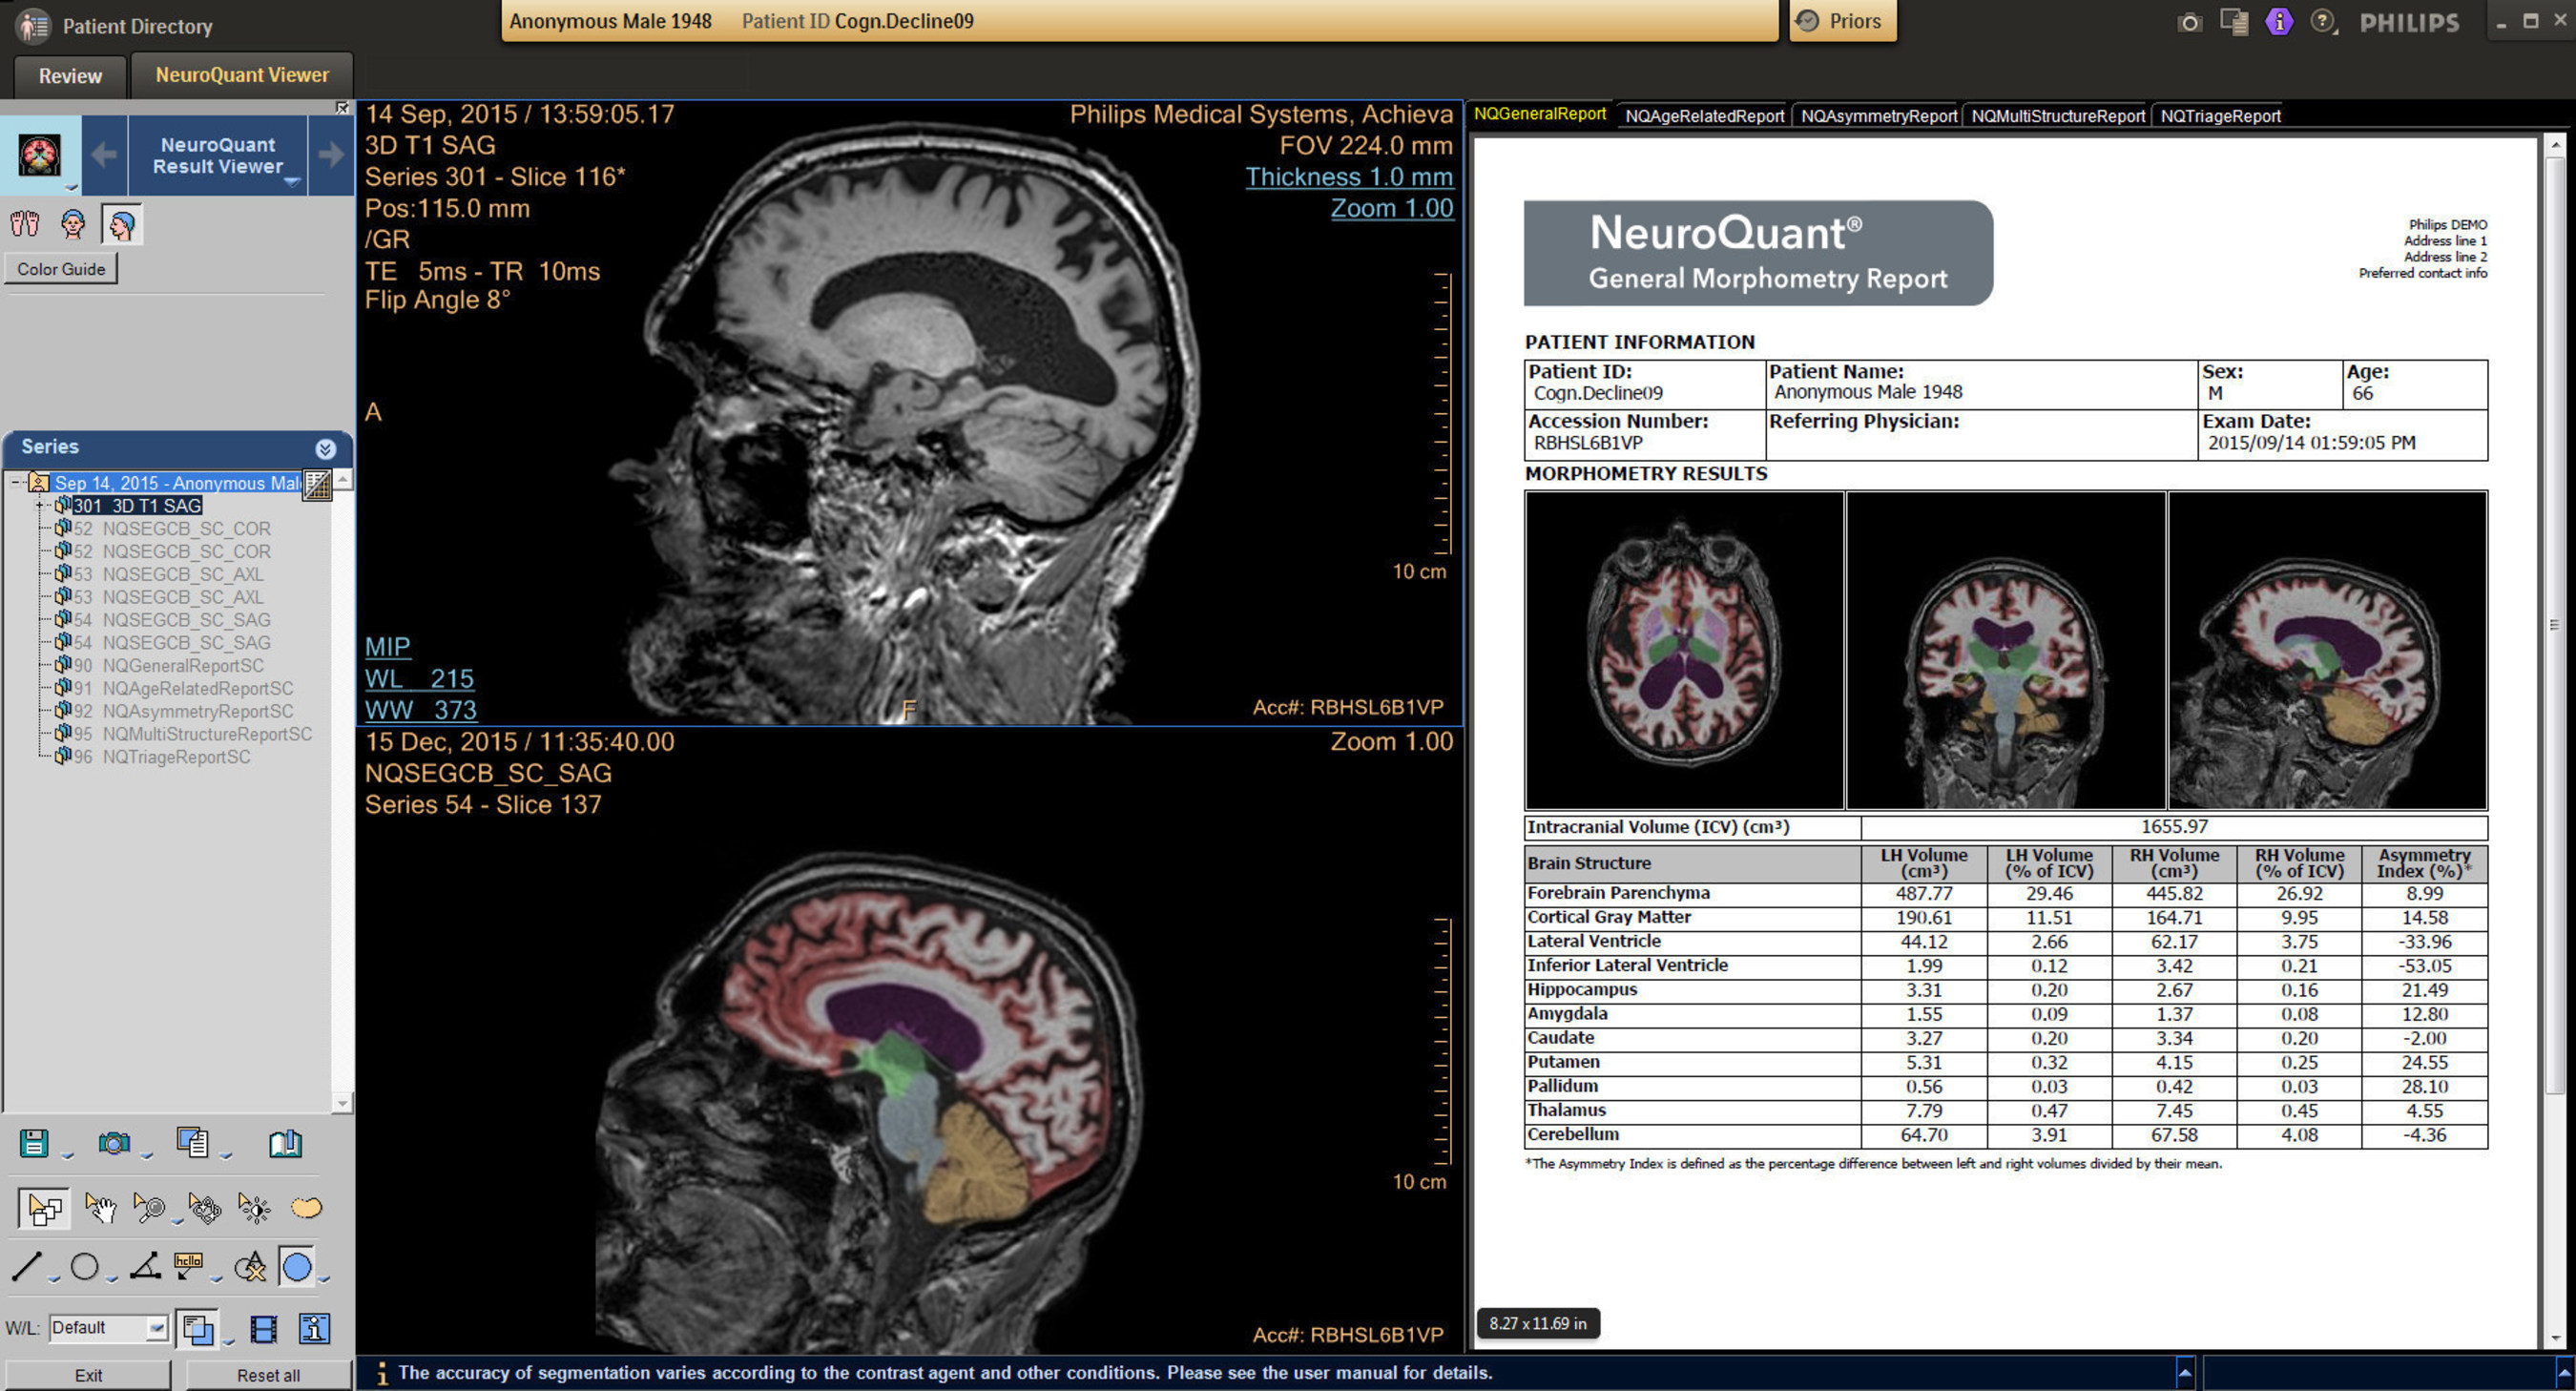 Another feature of IntelliSpace Portal 9.0 is the inclusion of the NeuroQuant(R) application (Cortechs Labs, Inc.), which enables clinicians to objectively quantify brain atrophy.